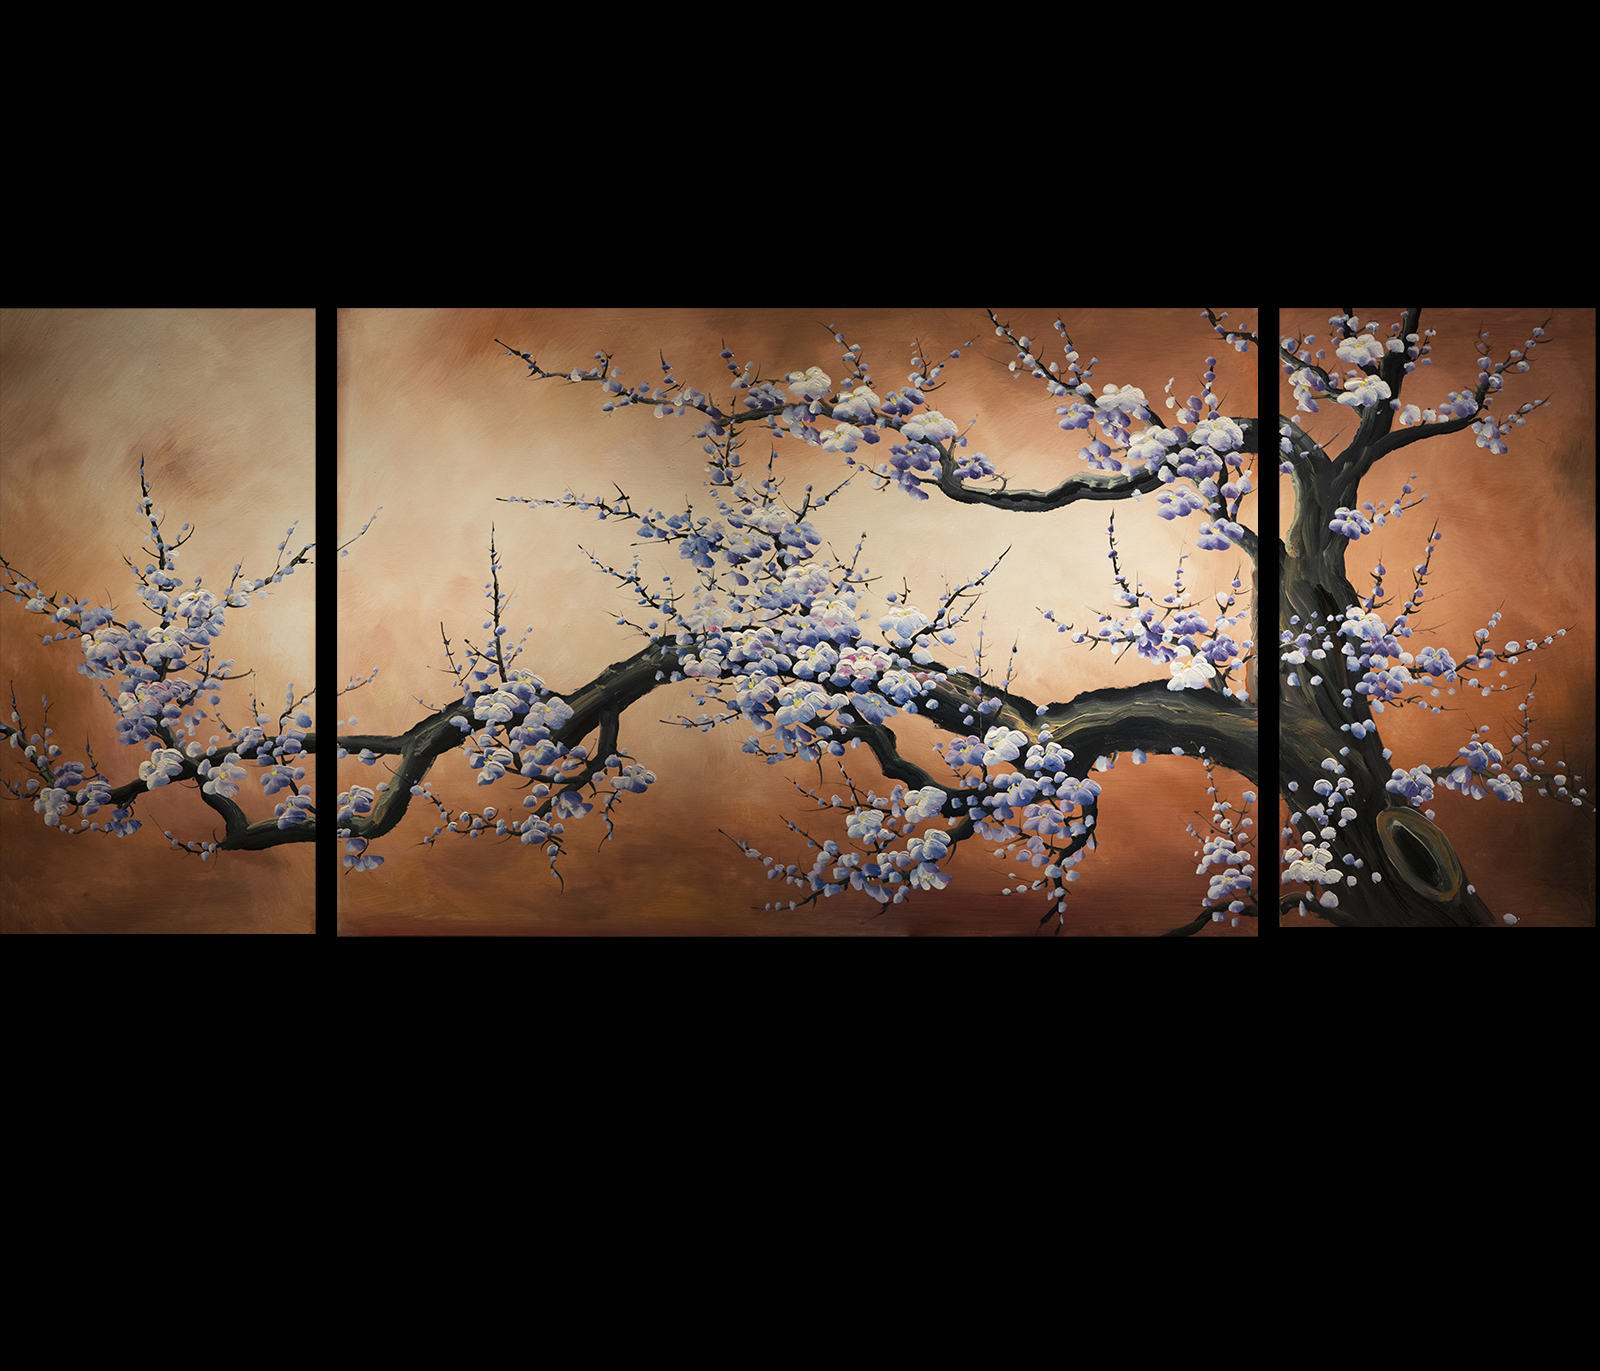 Japanese art prints canvas the image for Cherry blossom mural works